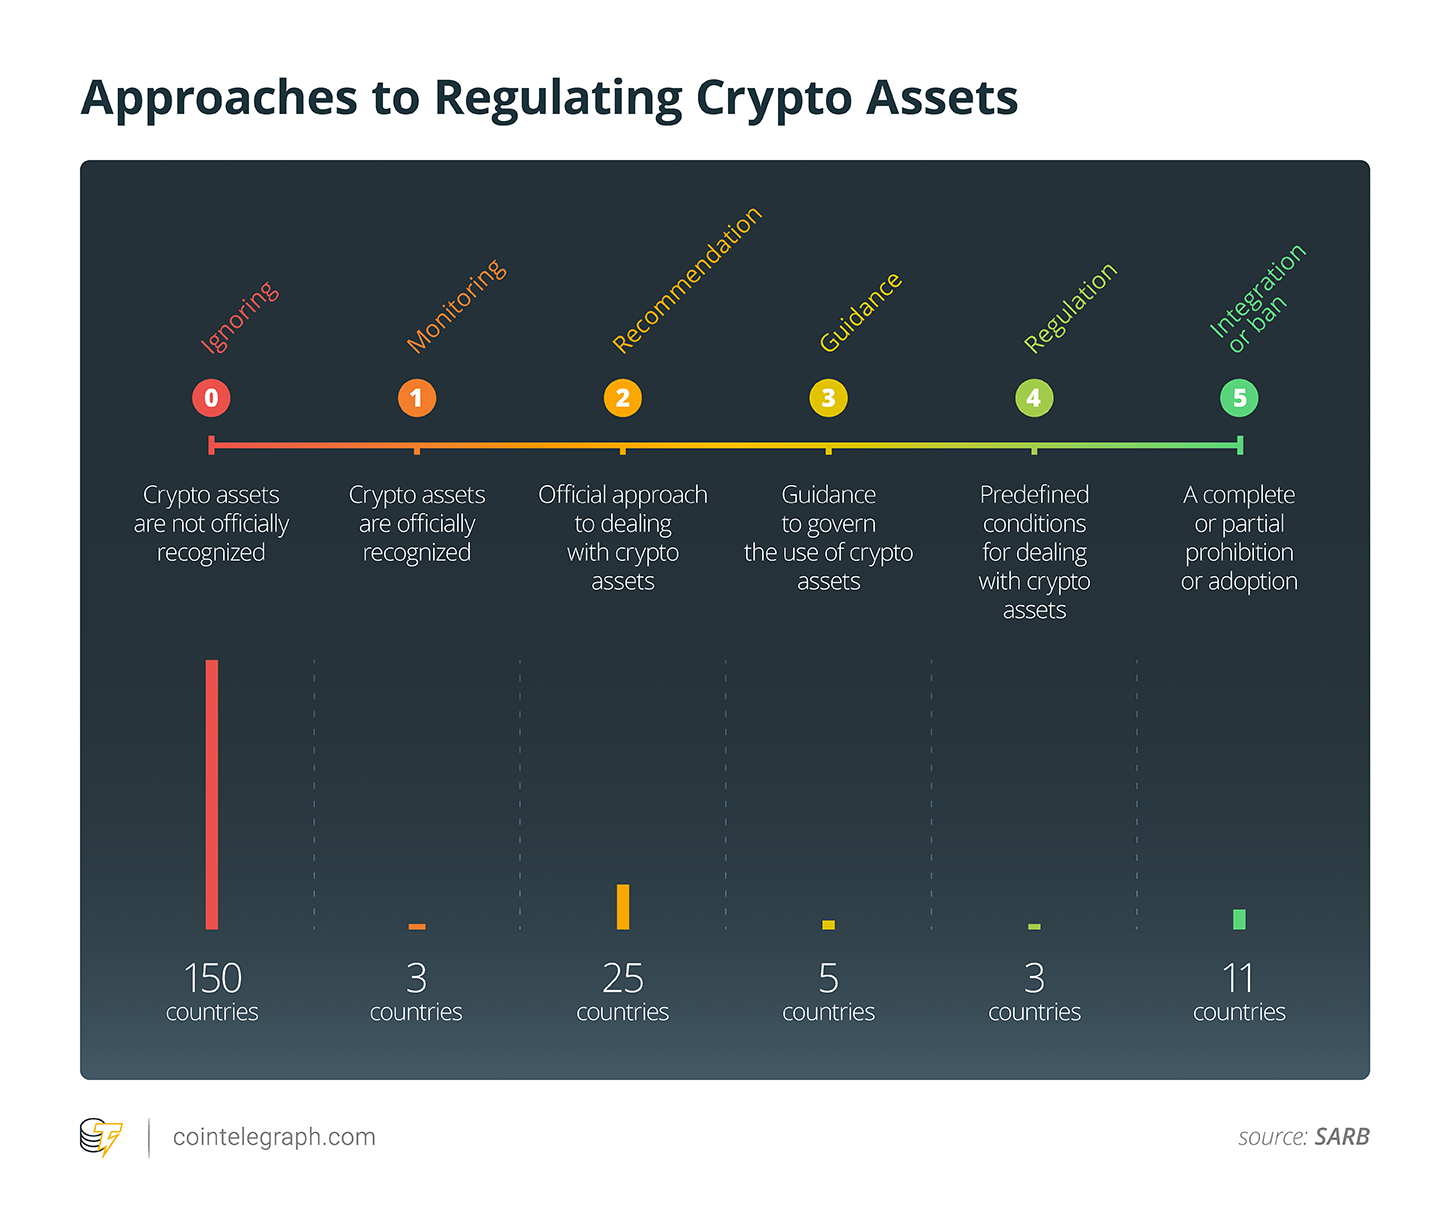 Approaches to Regulating Crypto Assets